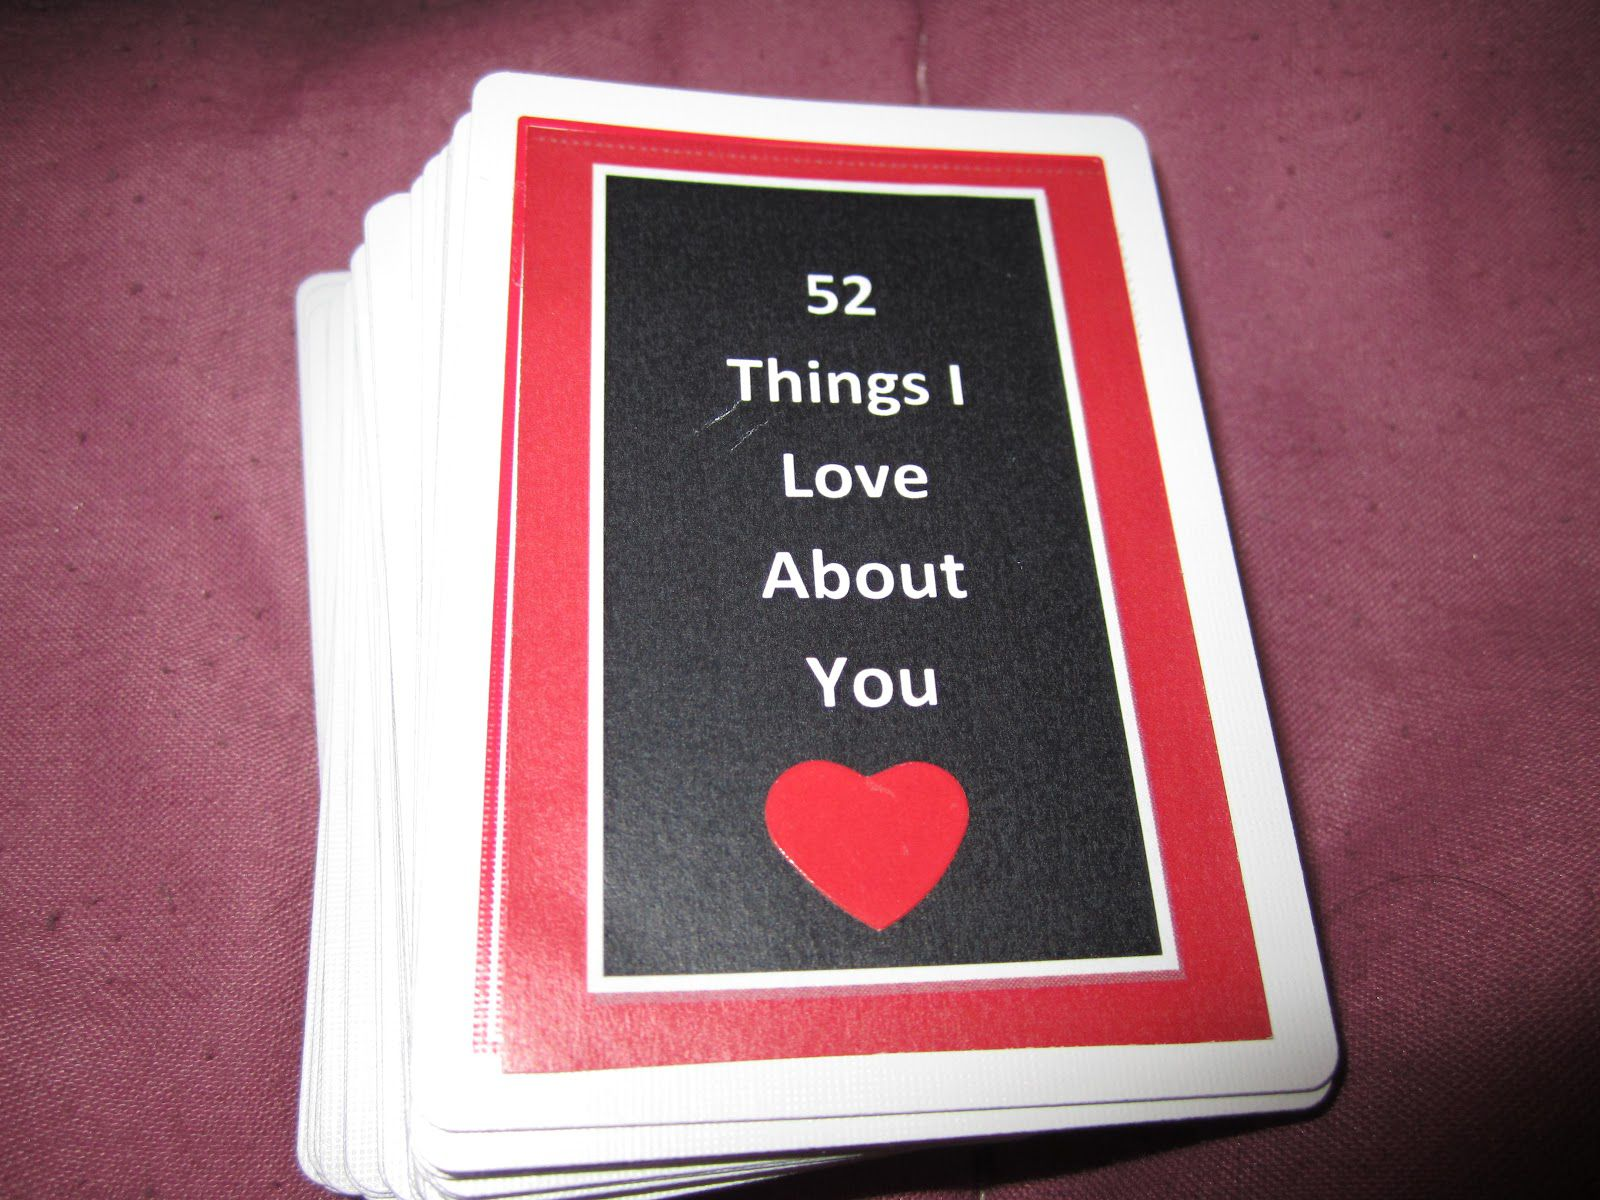 008 Singular 52 Reason Why I Love You Deck Of Card Free Template Highest Clarity Full